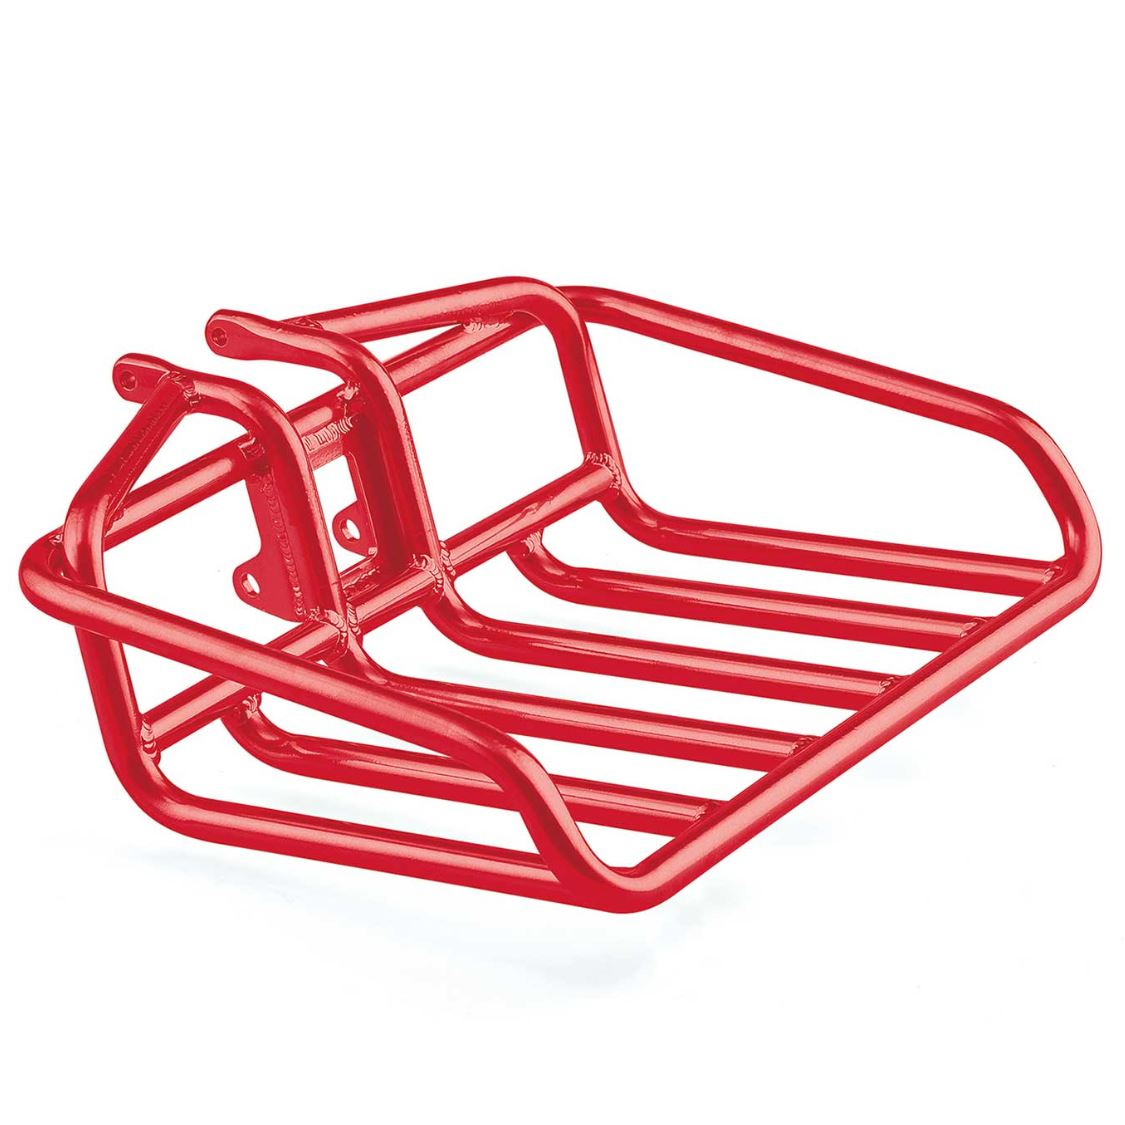 Benno Utility Front Tray Parts & Accessories Benno E-Bikes One Size Red